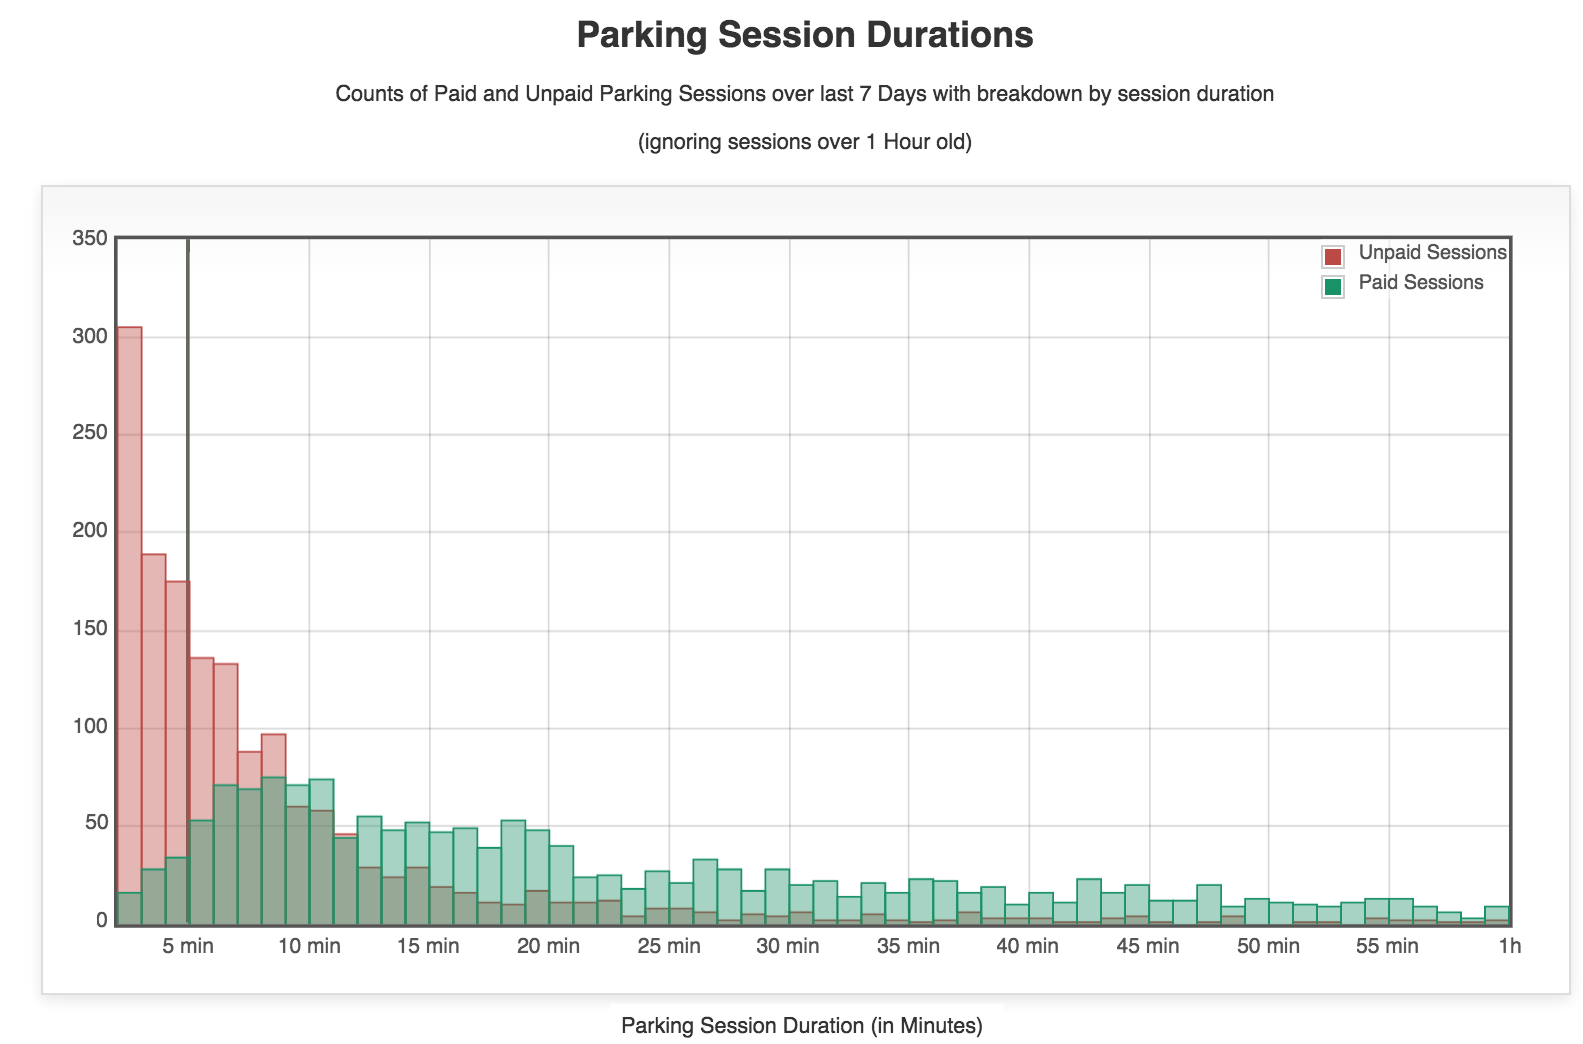 parking_session_durations.png